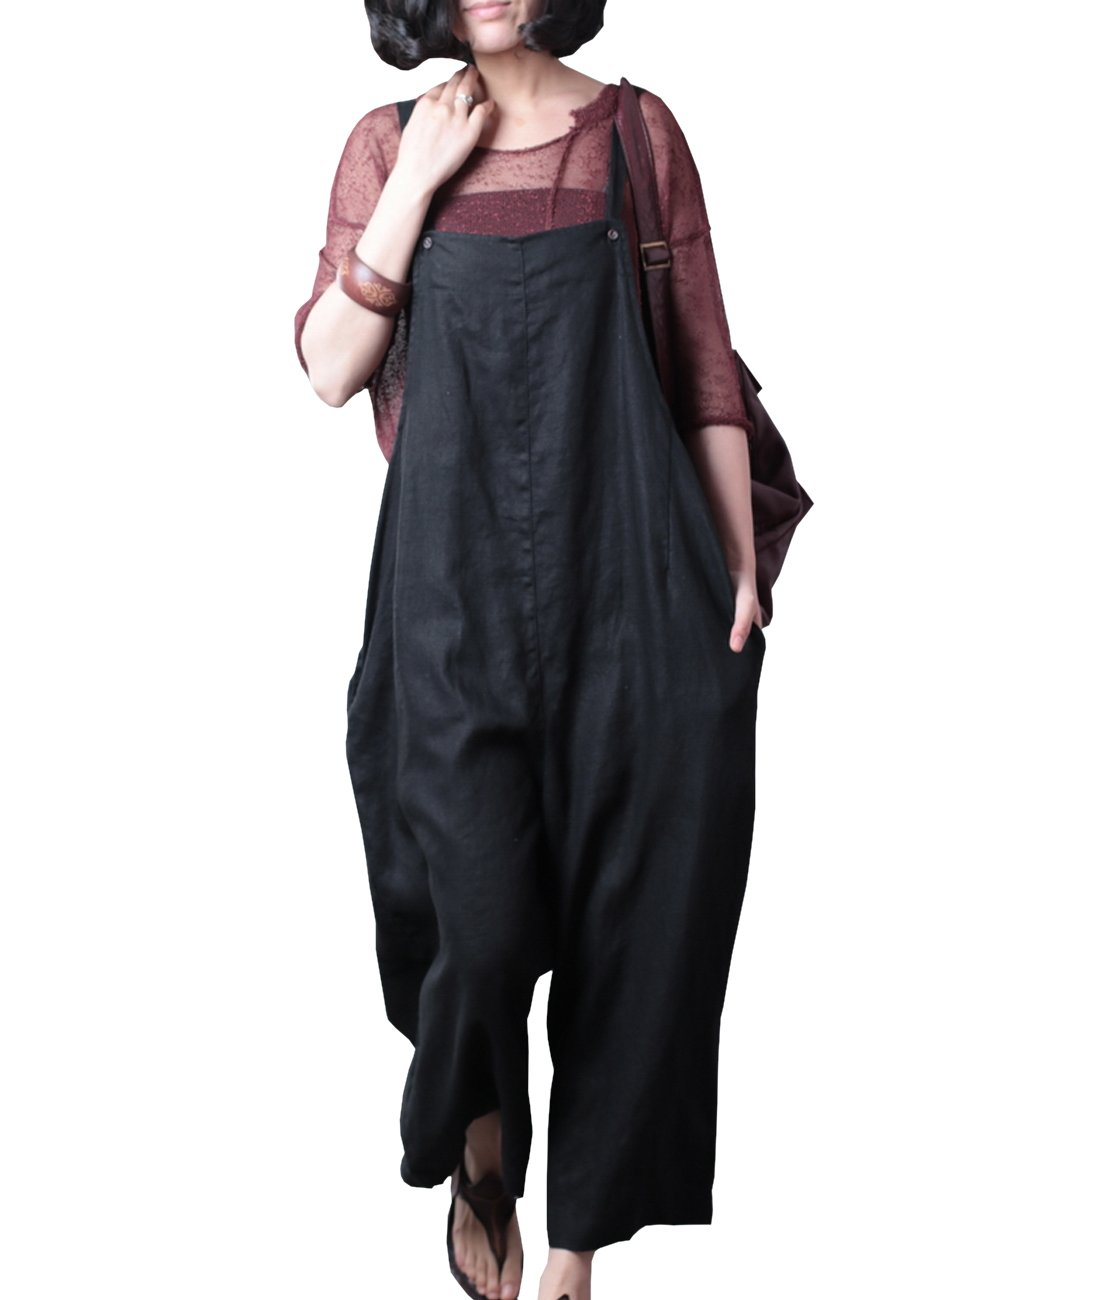 Yesno P21 Women Rompers Cropped Pants Trousers 100% Linen Casual Wide Leg Low Crotch Loose Fit,L (US12-US14),Black